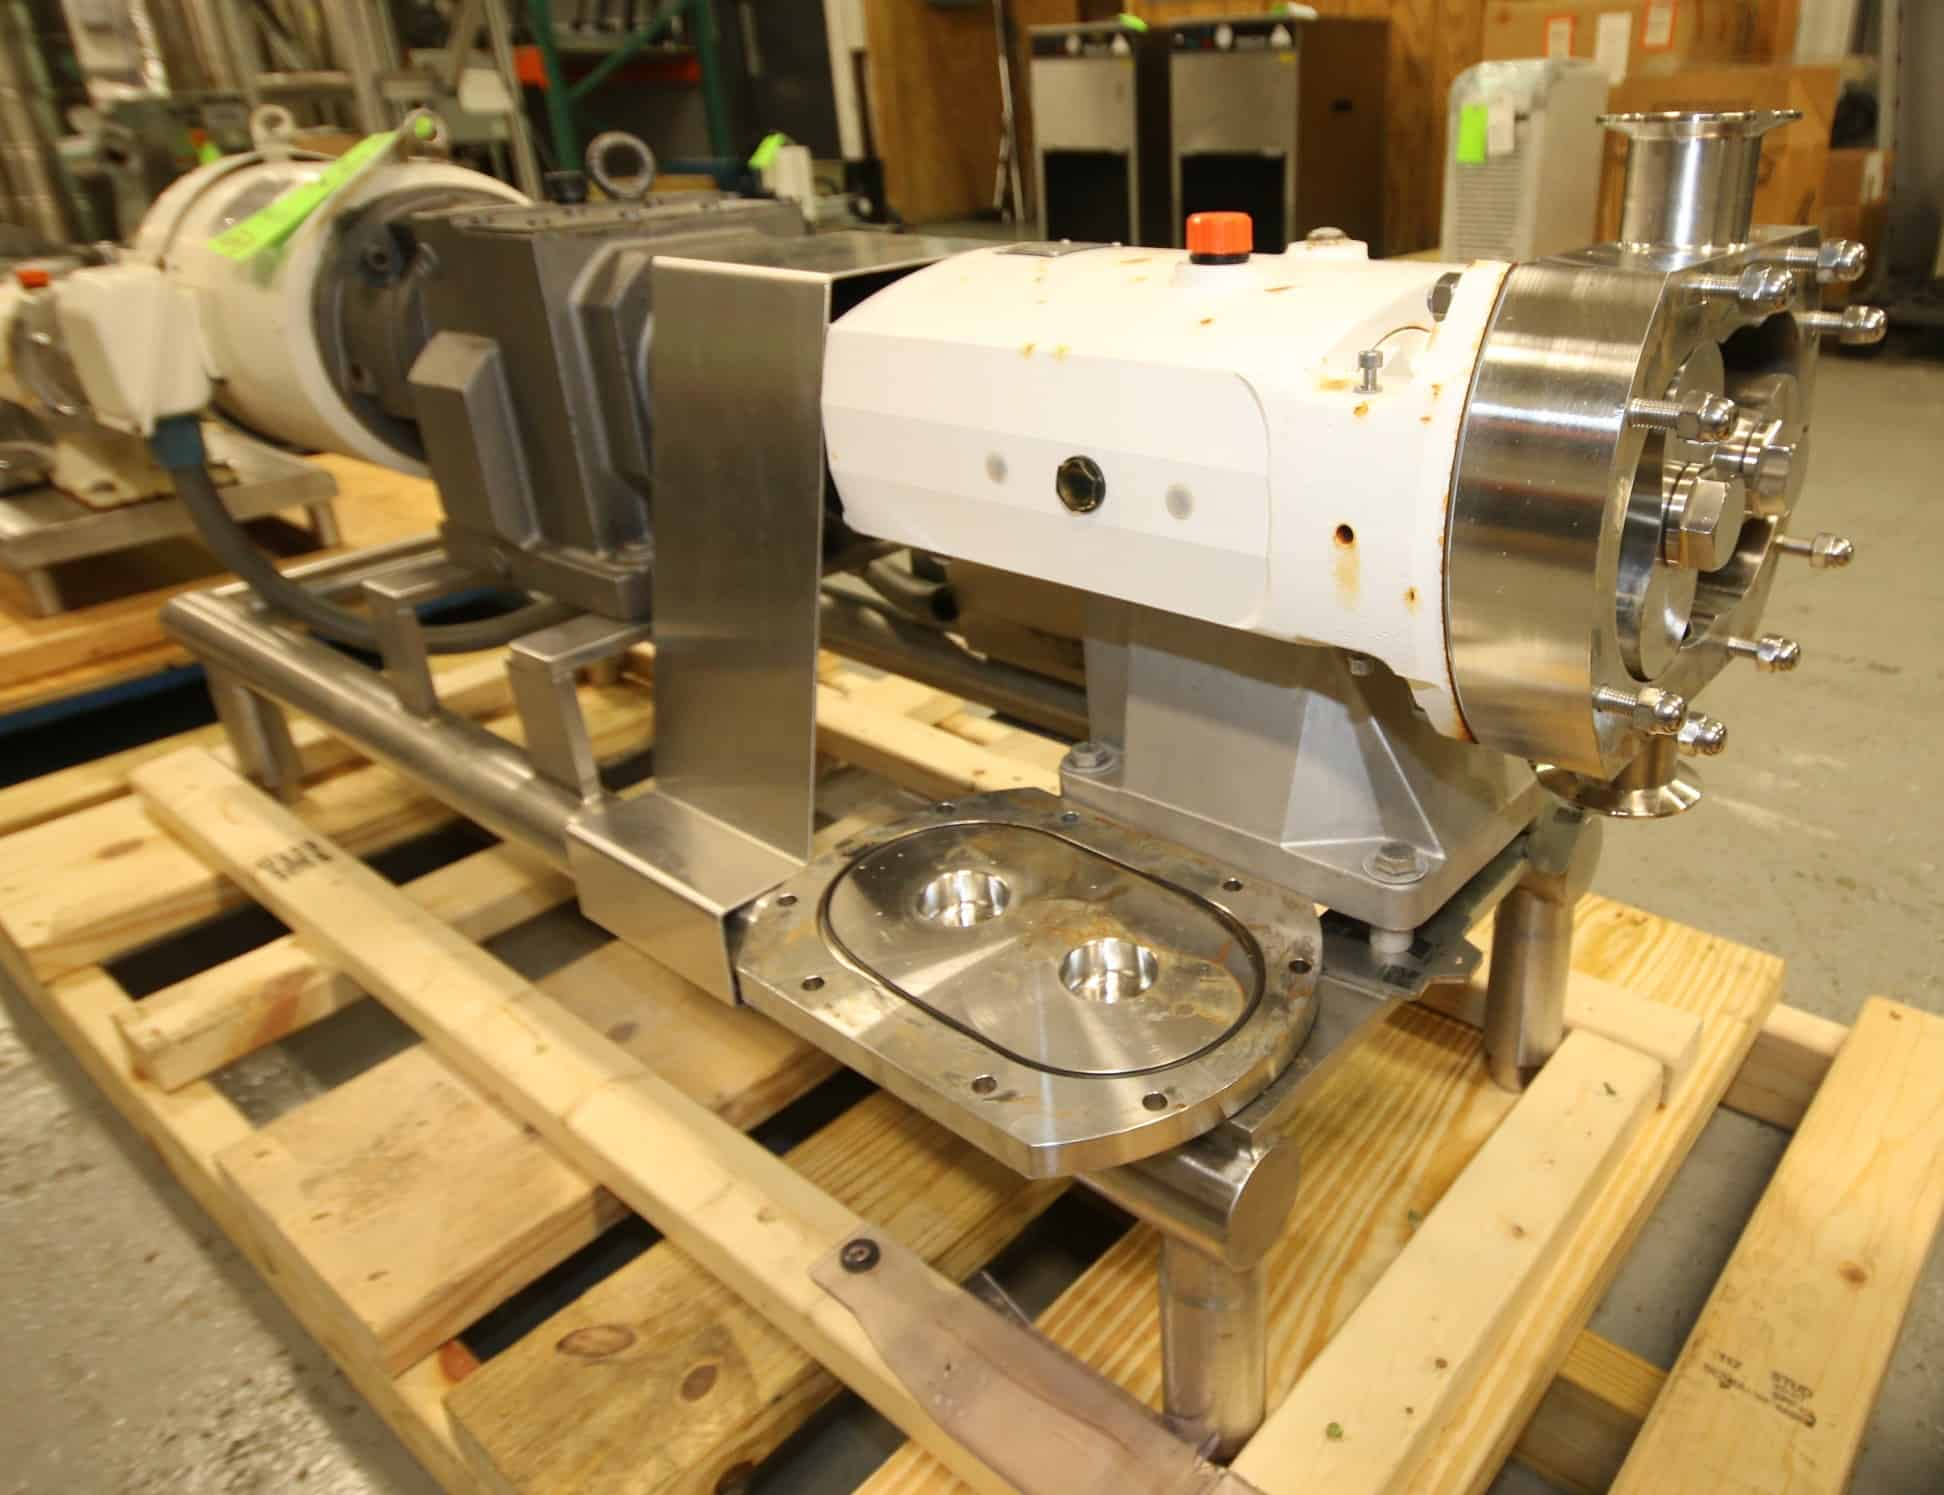 "2016 Alfa Laval Positive Displacement Pump, Model SRU4/055/HS, SN 147160, with 2 1/2"" Clamp Type Connections, Includes Rotors, Dodge / Sterling 7.5 hp / 1770 rpm Drive Motor, 208/230/460V 3 Phase, S/S Frame"